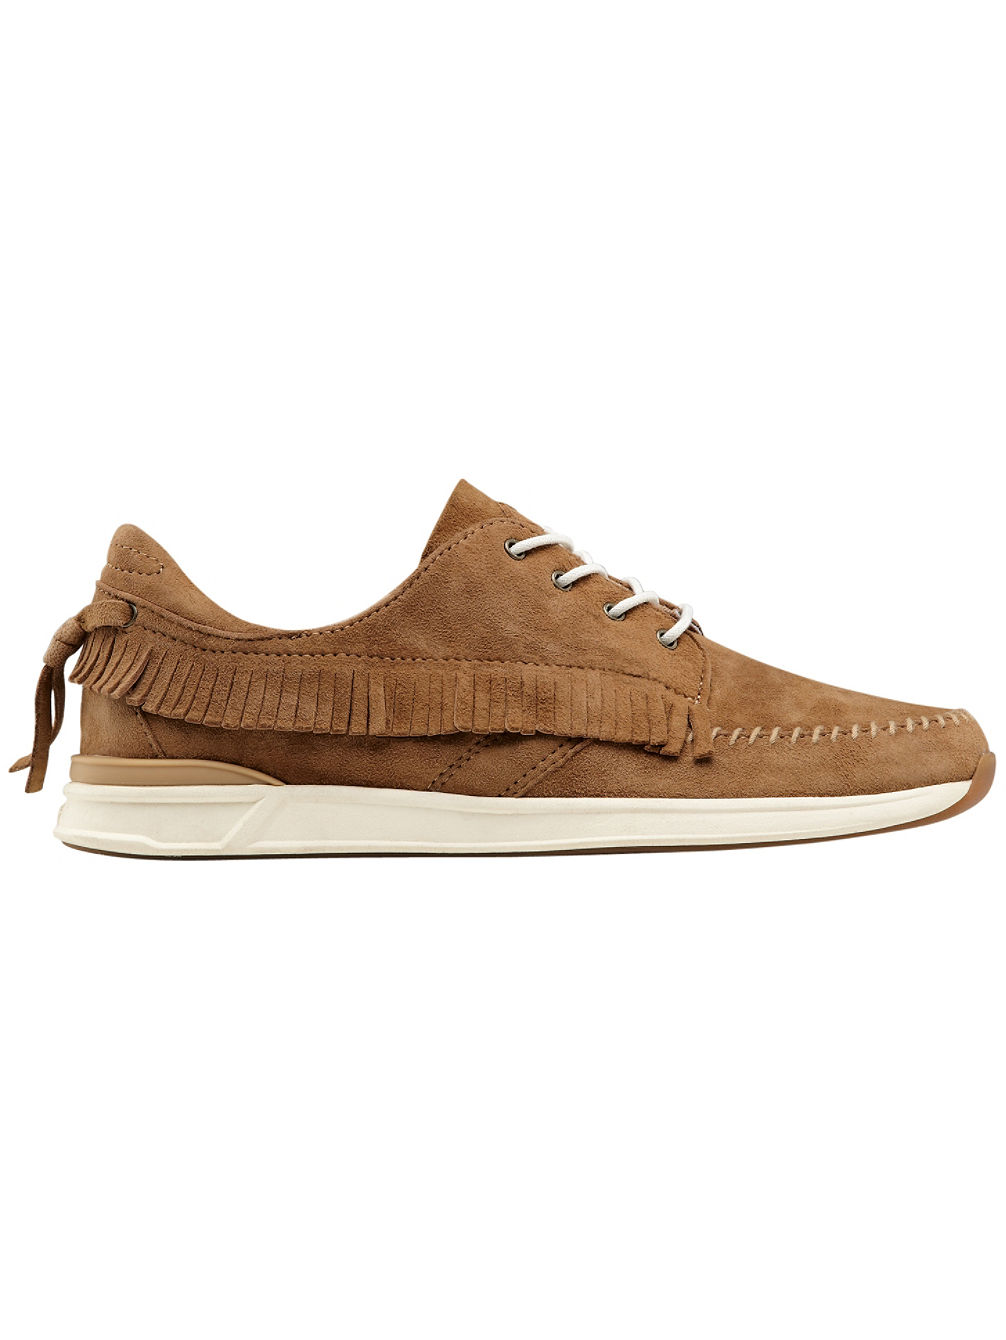 reef-rover-low-fashion-sneakers-women